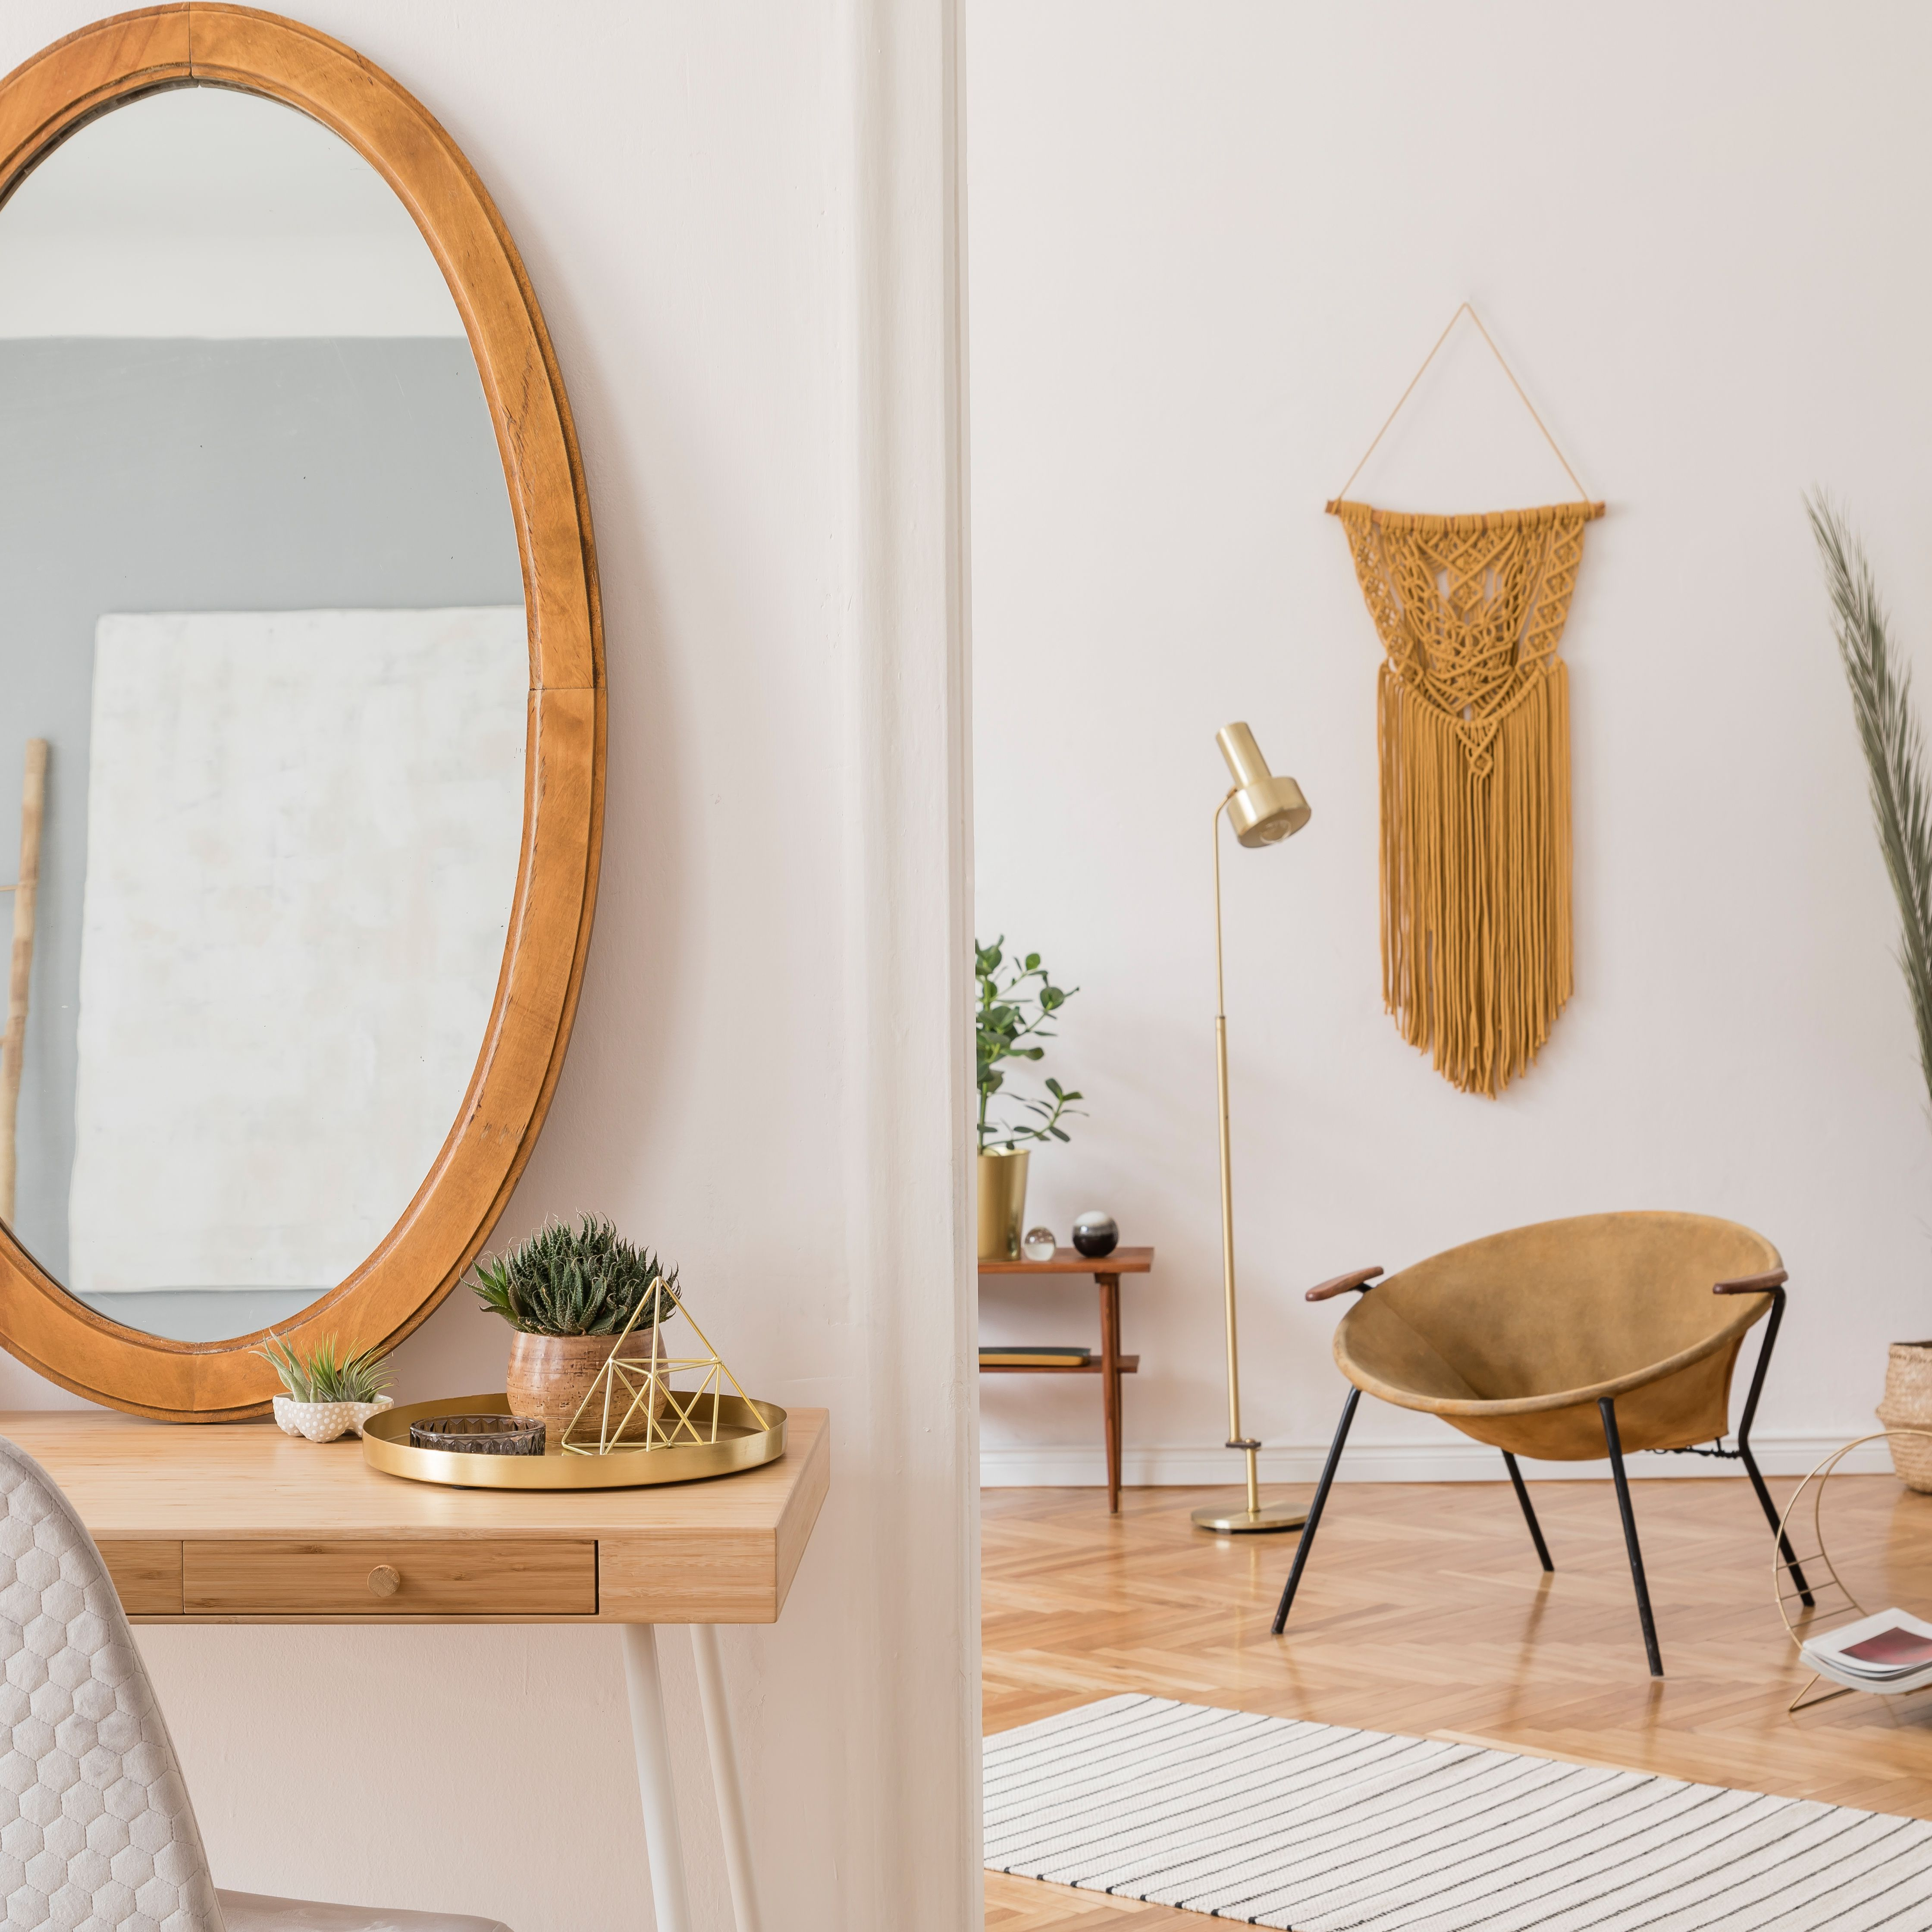 Staging Your Home With Mirrors To Enlarge The Space